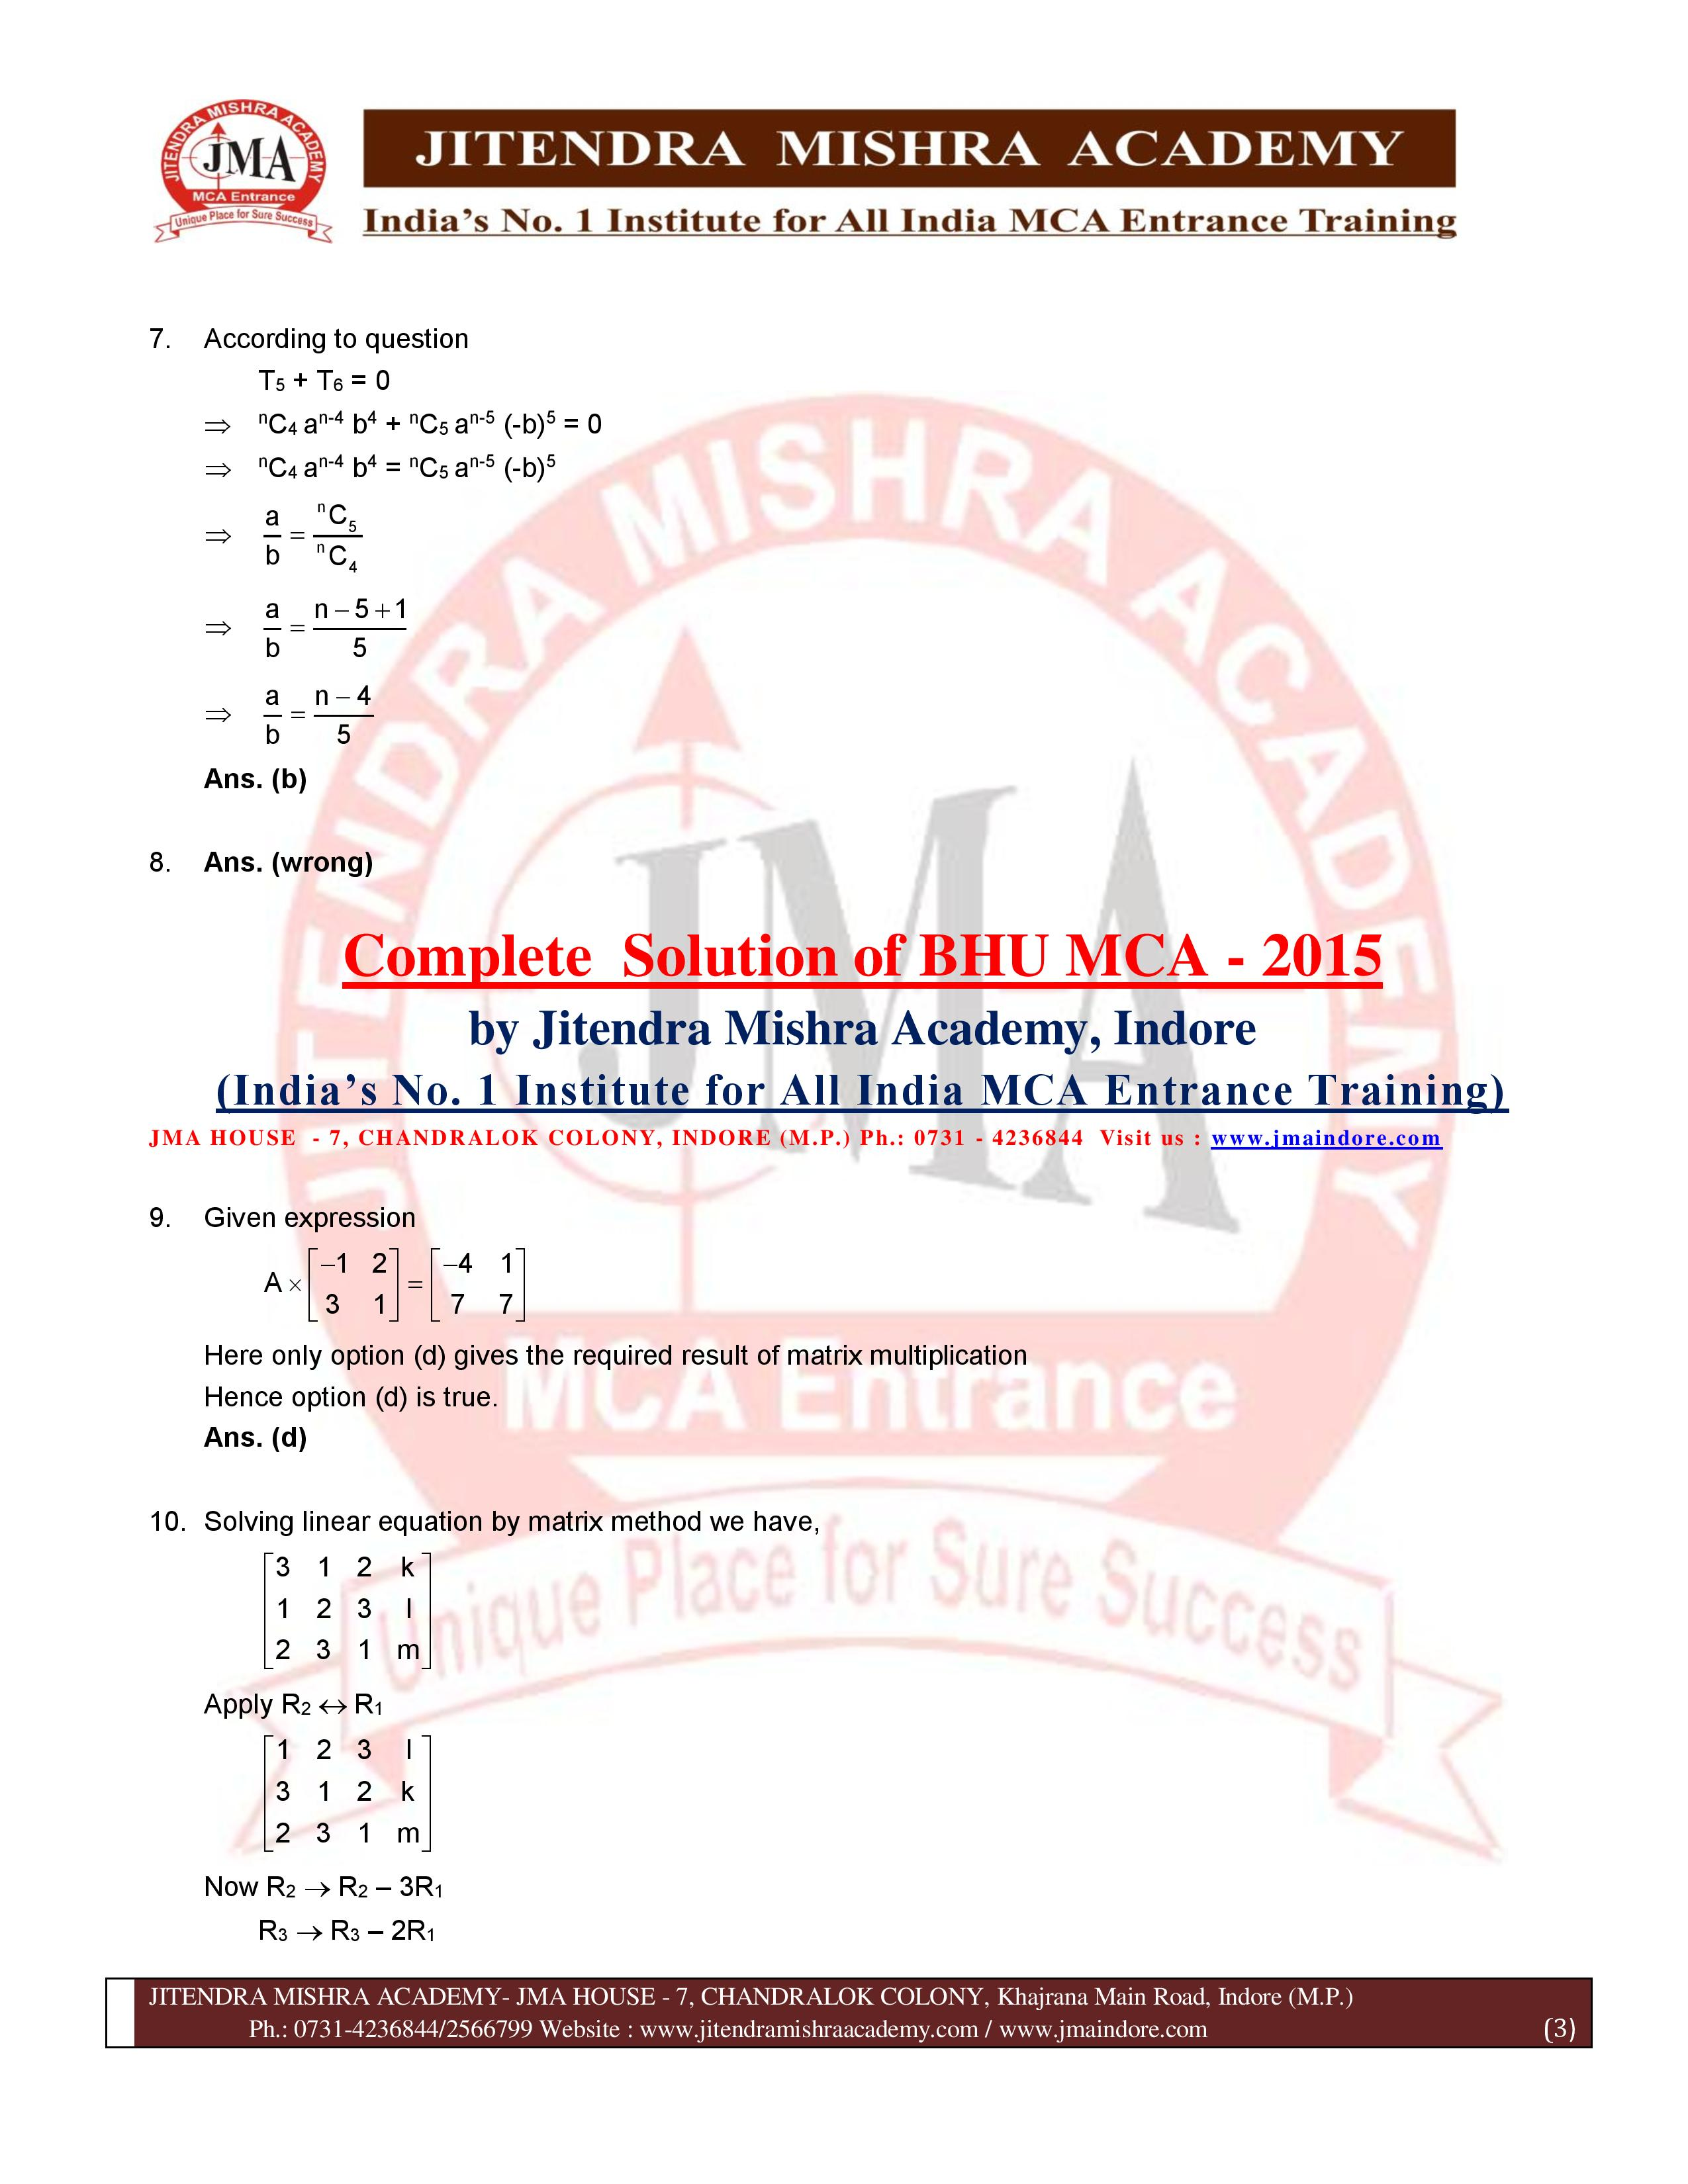 BHU 2015 SOLUTION (SET - 1) (29.06.16)-page-003